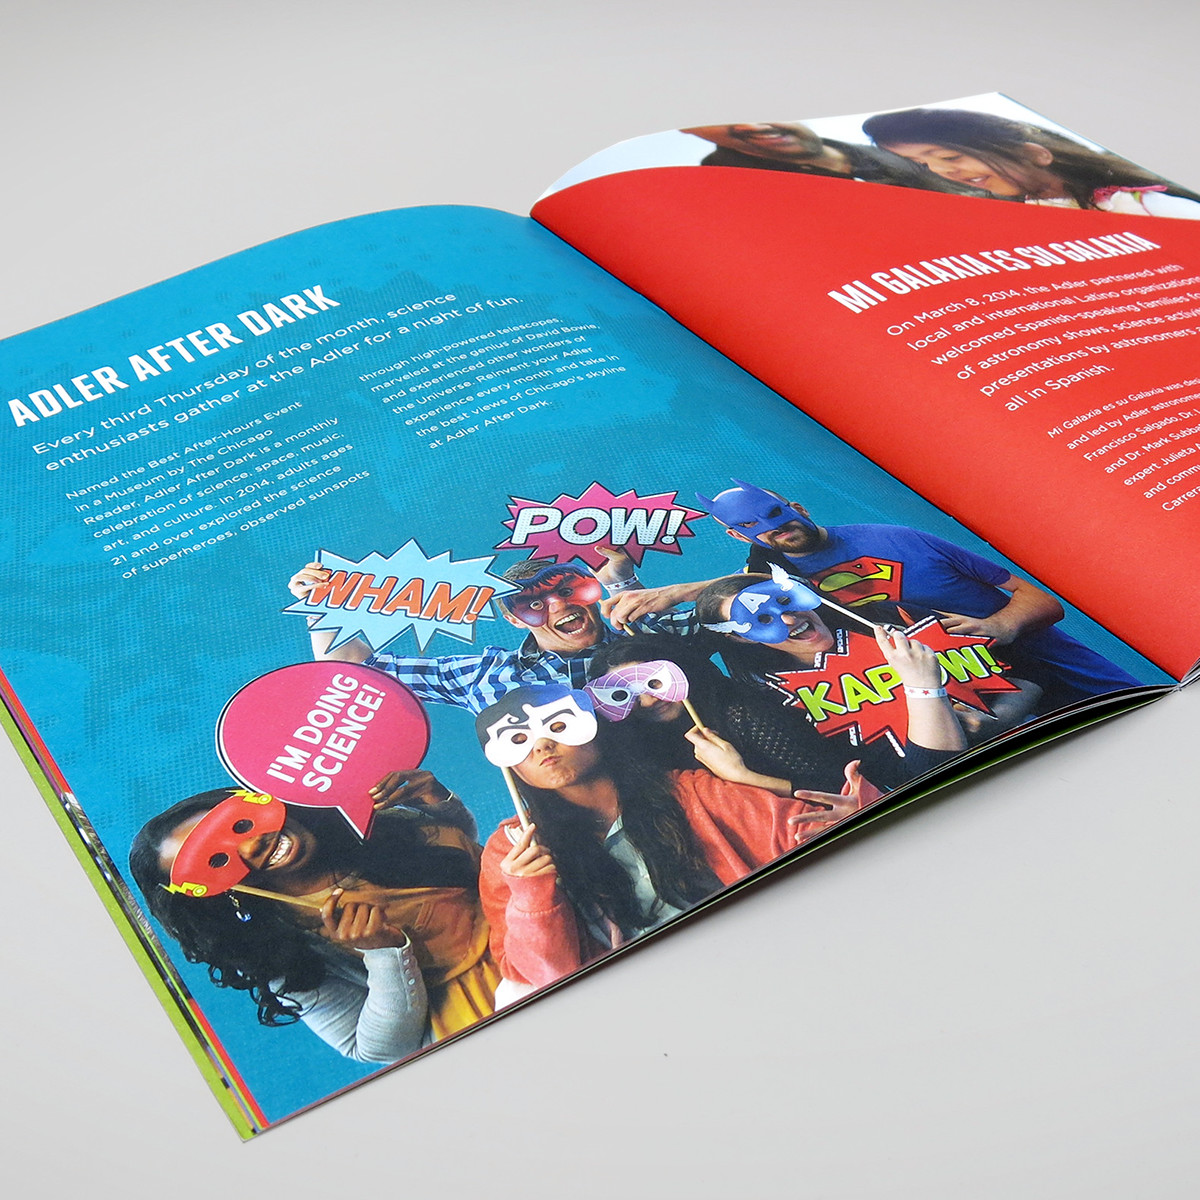 Adler Planetarium Annual Report on AIGA Member Gallery